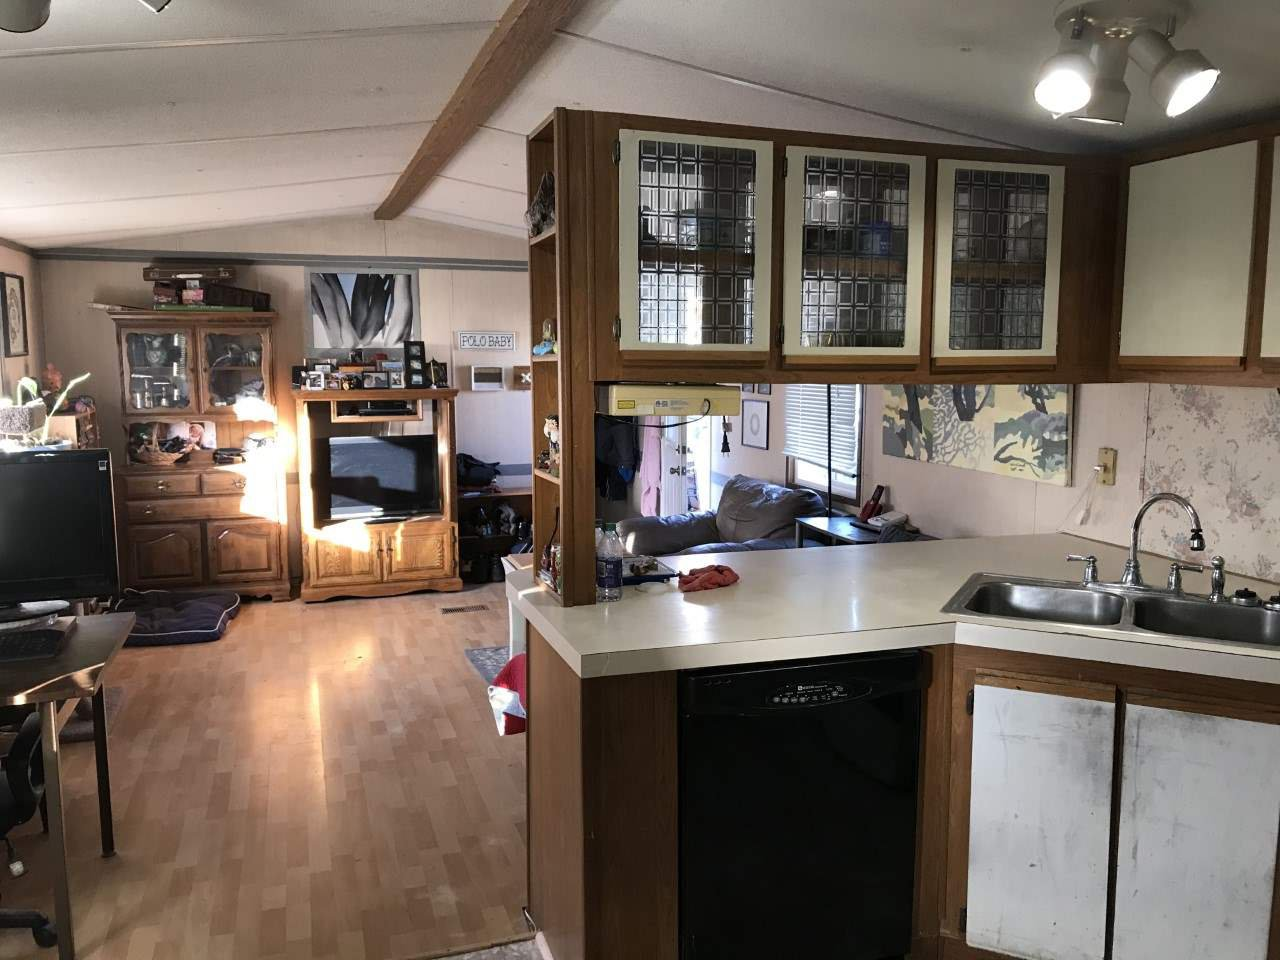 """Photo 8: Photos: 71 3300 HORN Street in Abbotsford: Central Abbotsford Manufactured Home for sale in """"Georgian Park"""" : MLS®# R2423912"""